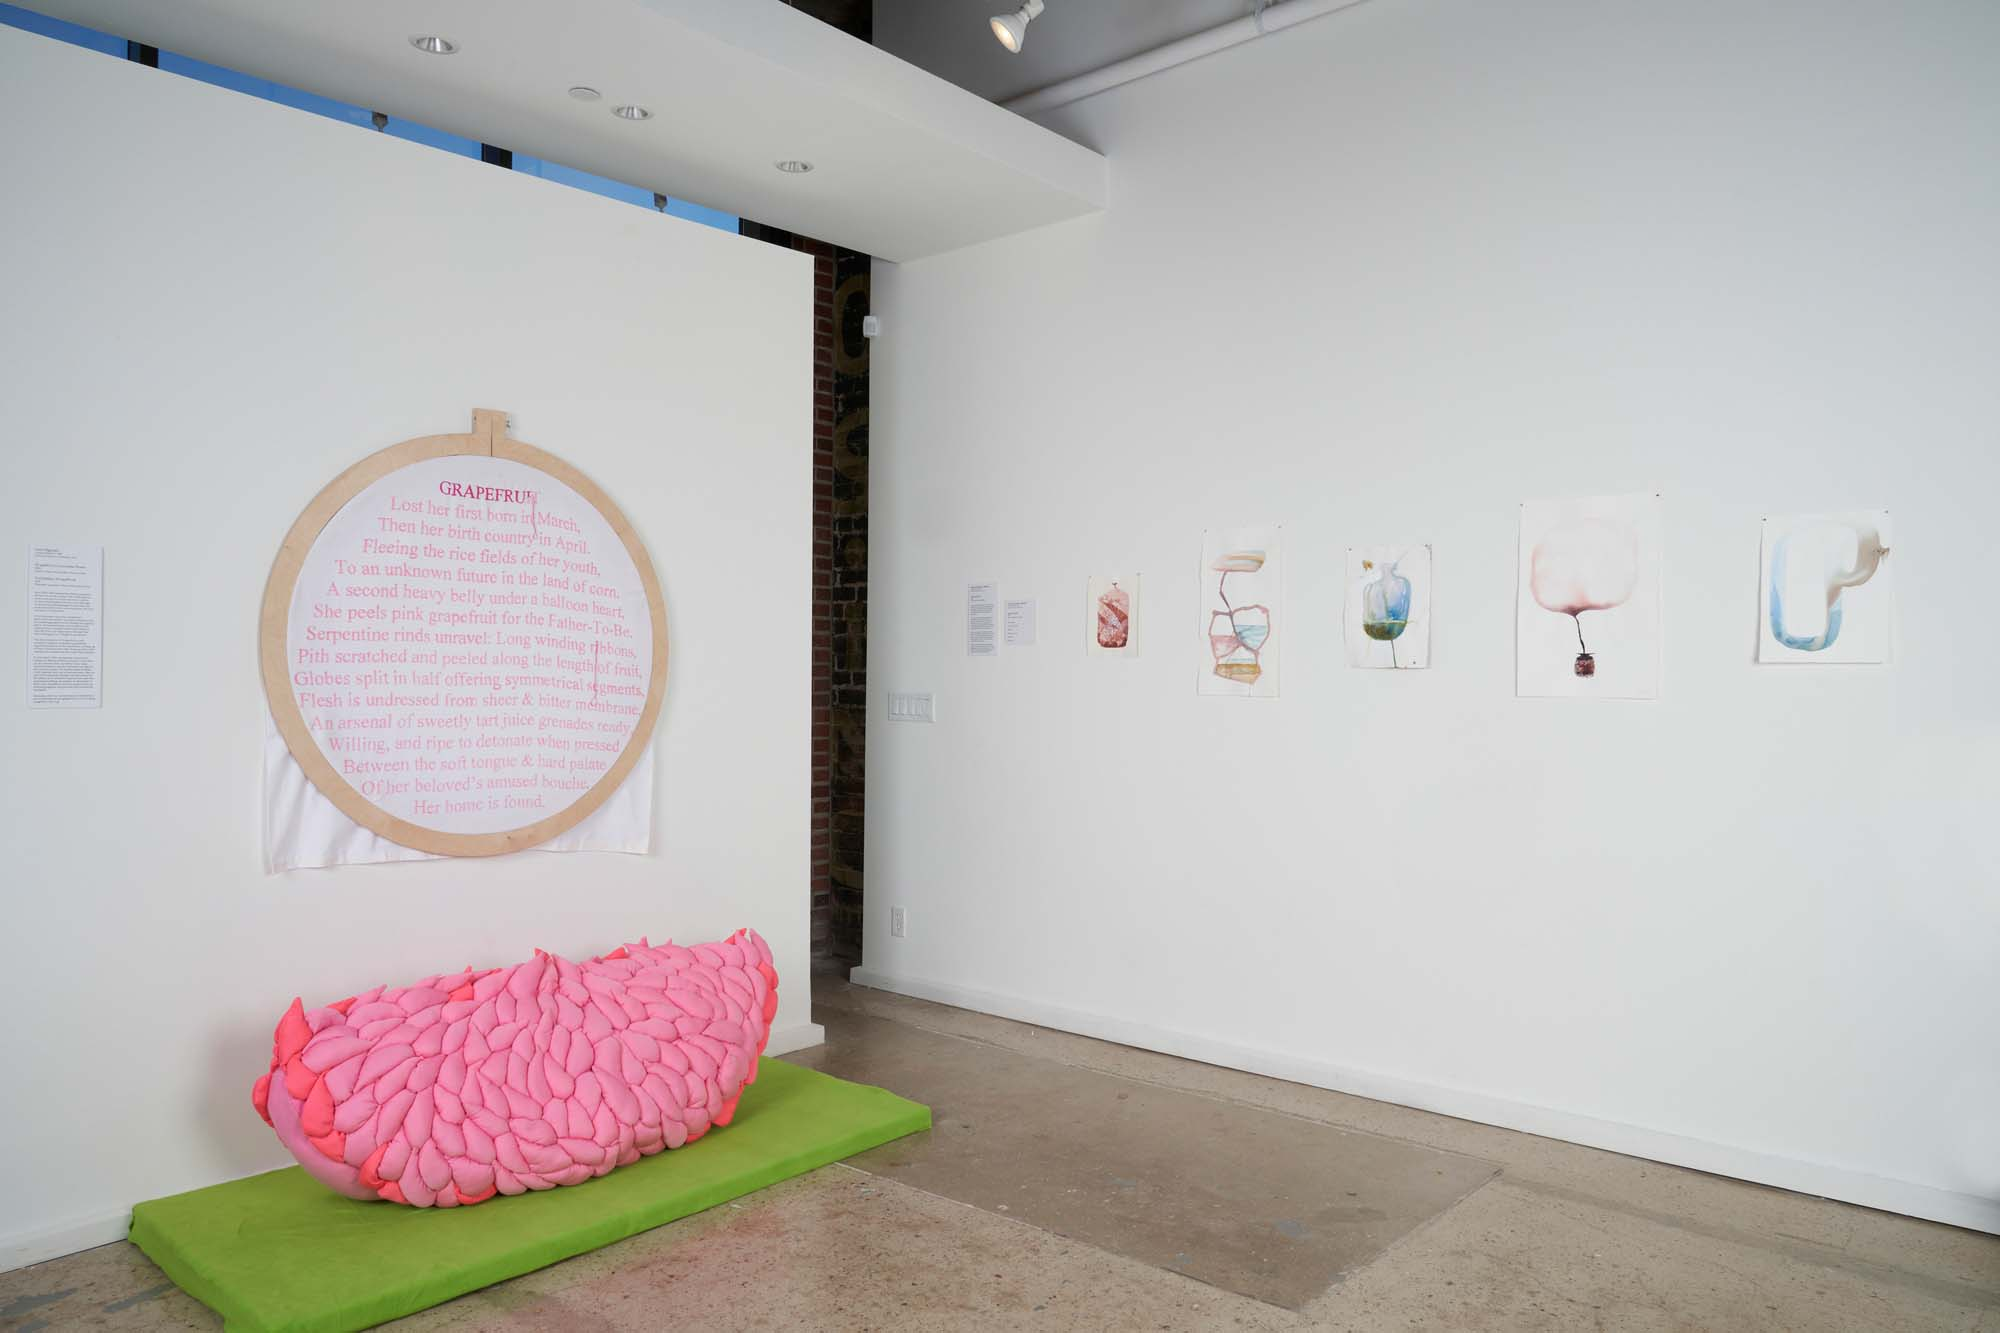 exhibition image including a large stuffed citrus on the floor and a large loom with wording inside.